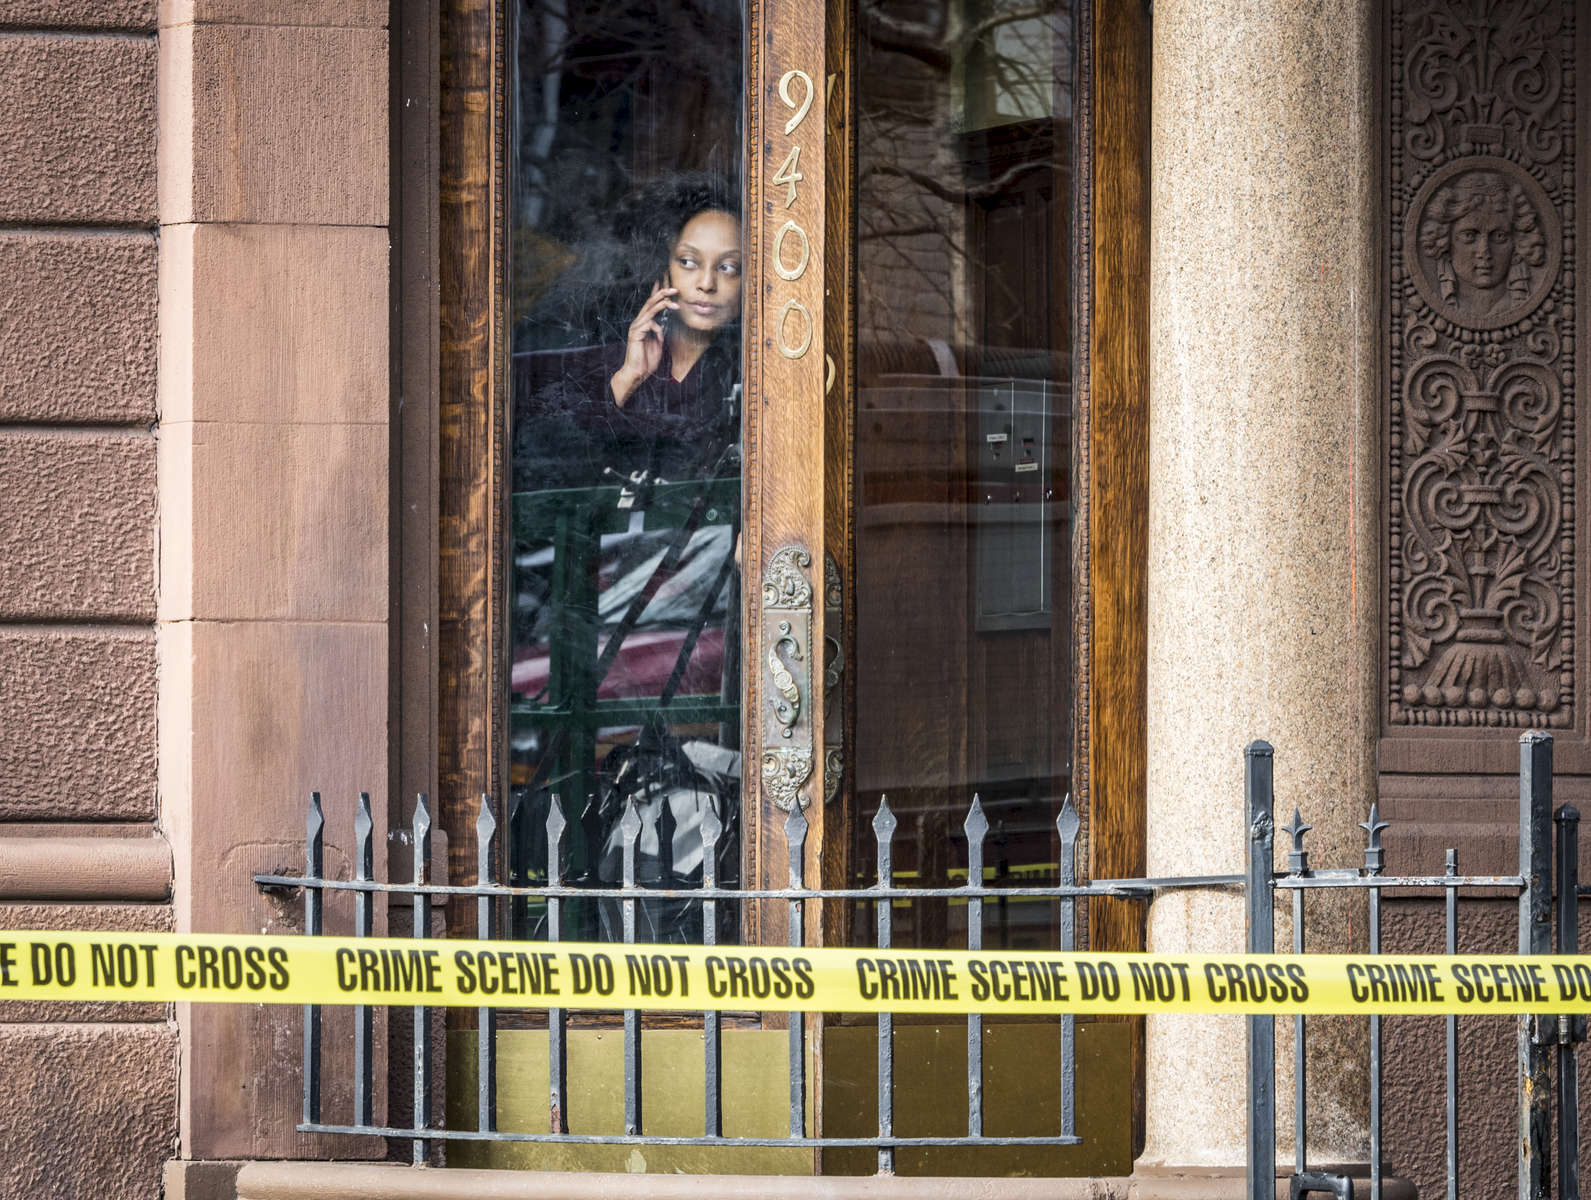 A woman looks out of her door as FDNY investigators inspect the scene where firefighter Michael Davidson, 37, was killed while battling the 5 alarm fire located at 773 St. Nicholas Avenue in Manhattan on Friday, March 23, 2018.